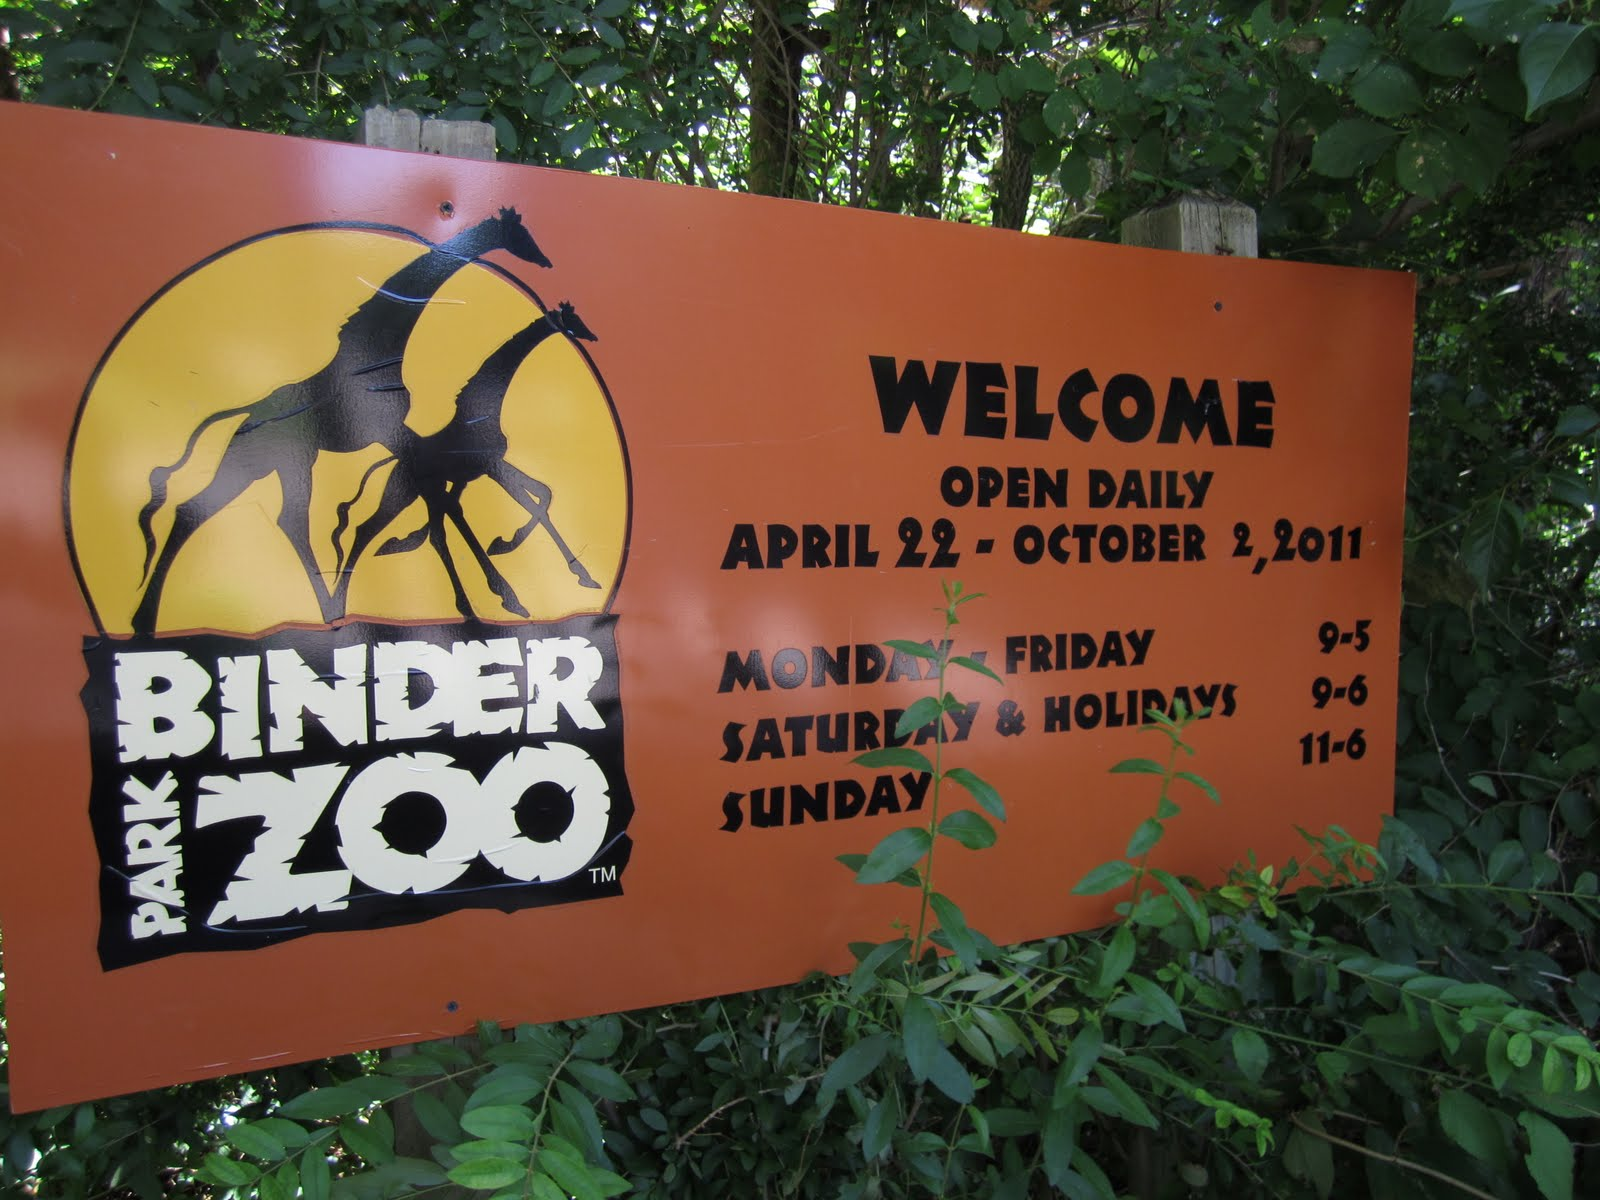 Binder park zoo coupons